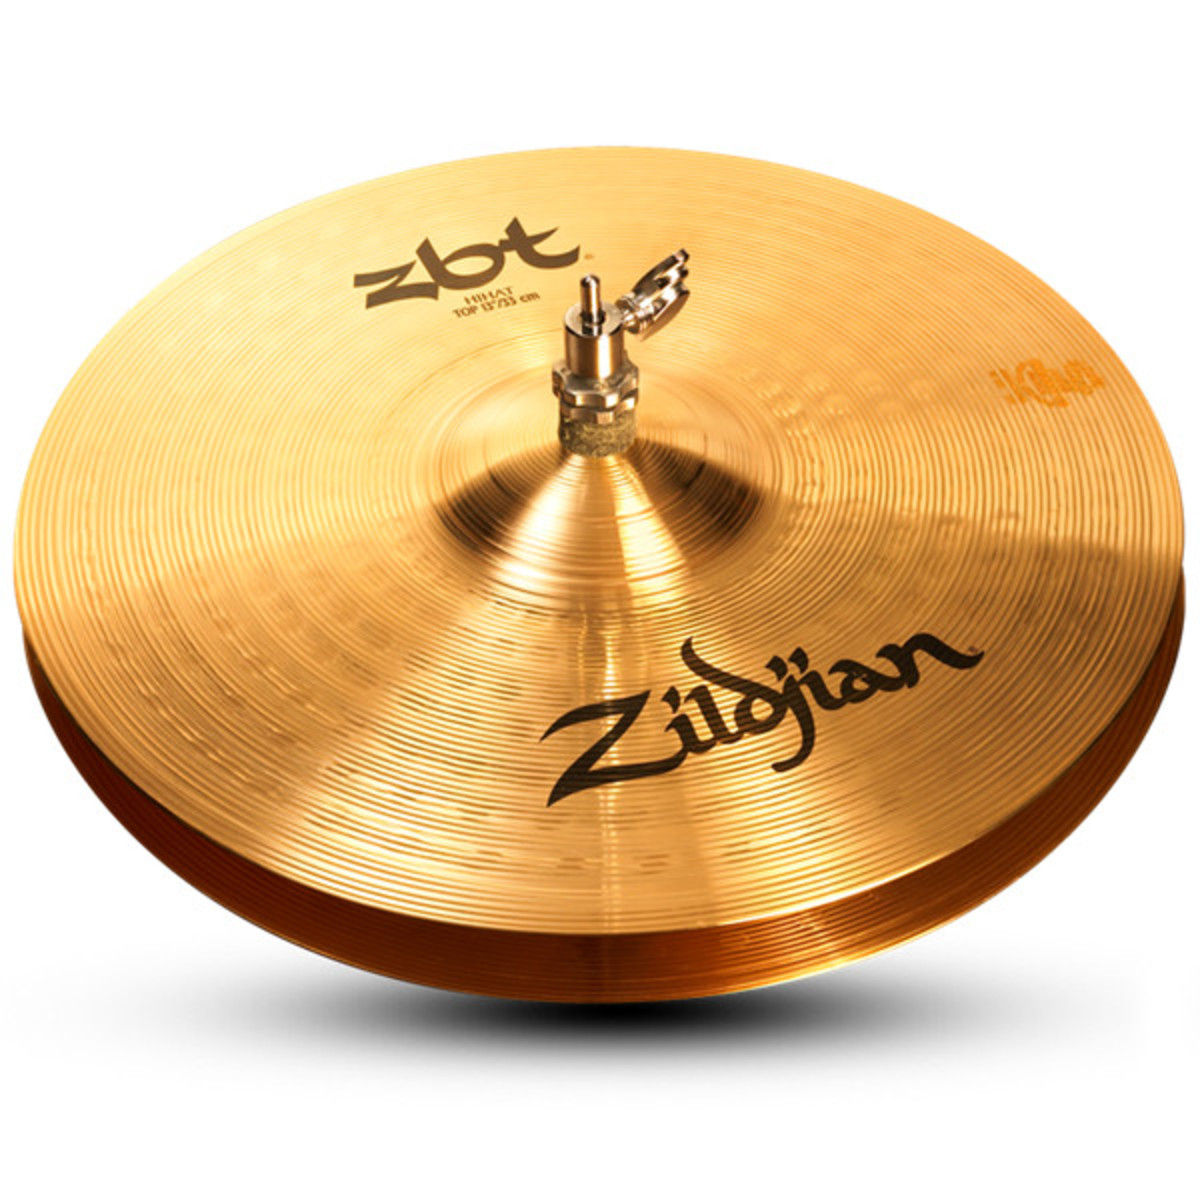 Hi Hat Cymbal Facts : zildjian zbt 13 39 39 hi hat cymbals at gear4music ~ Hamham.info Haus und Dekorationen